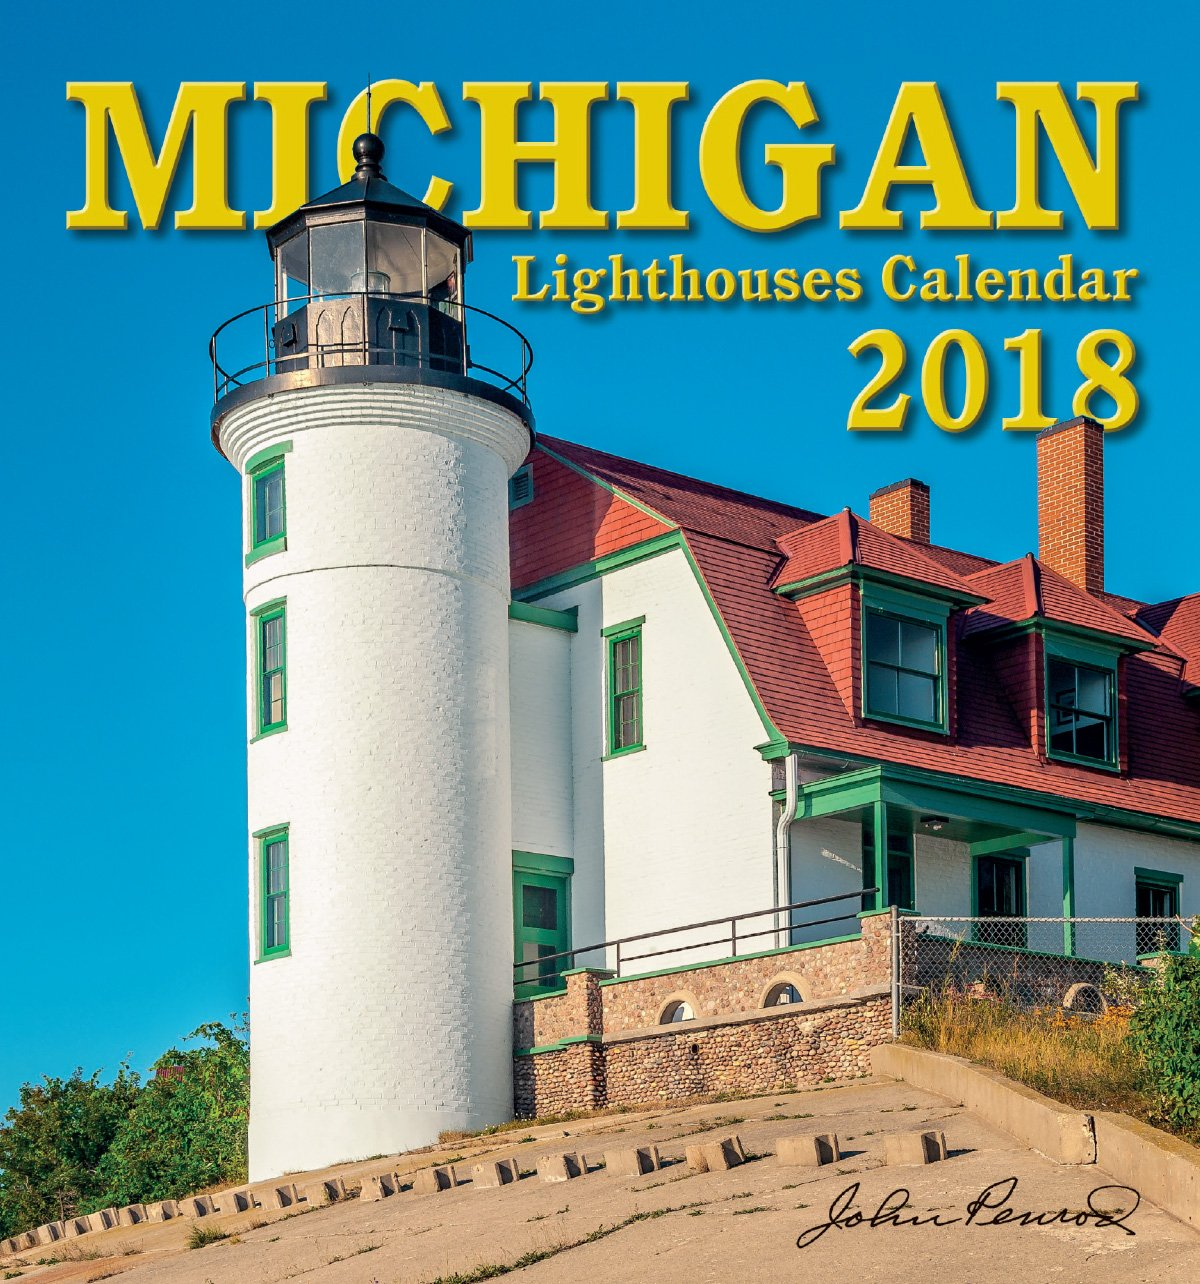 2018 Michigan Lighthouses Wall Calendar Calendar – July 1, 2017 Penrod Hiawatha Time Factory 1940691095